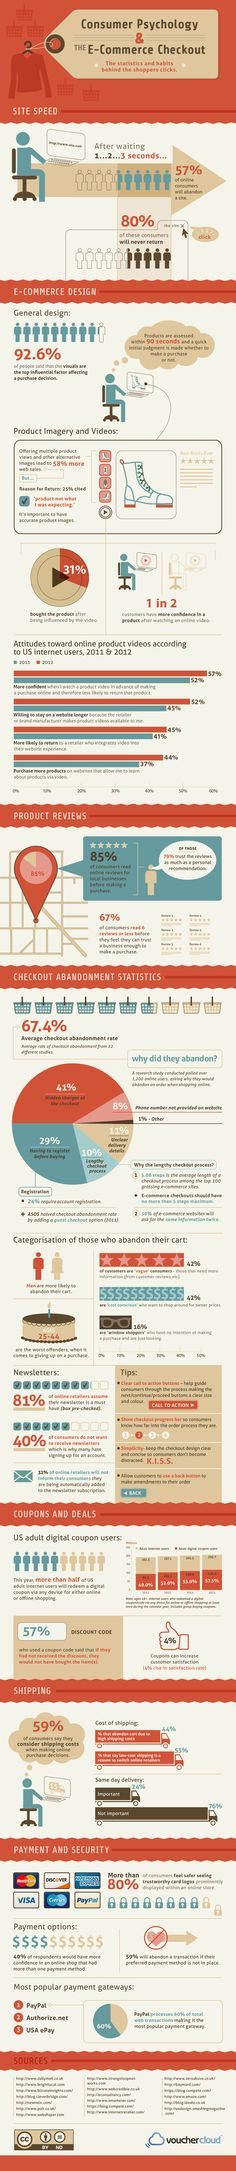 Consumer Psychology & the E-Commerce Checkout